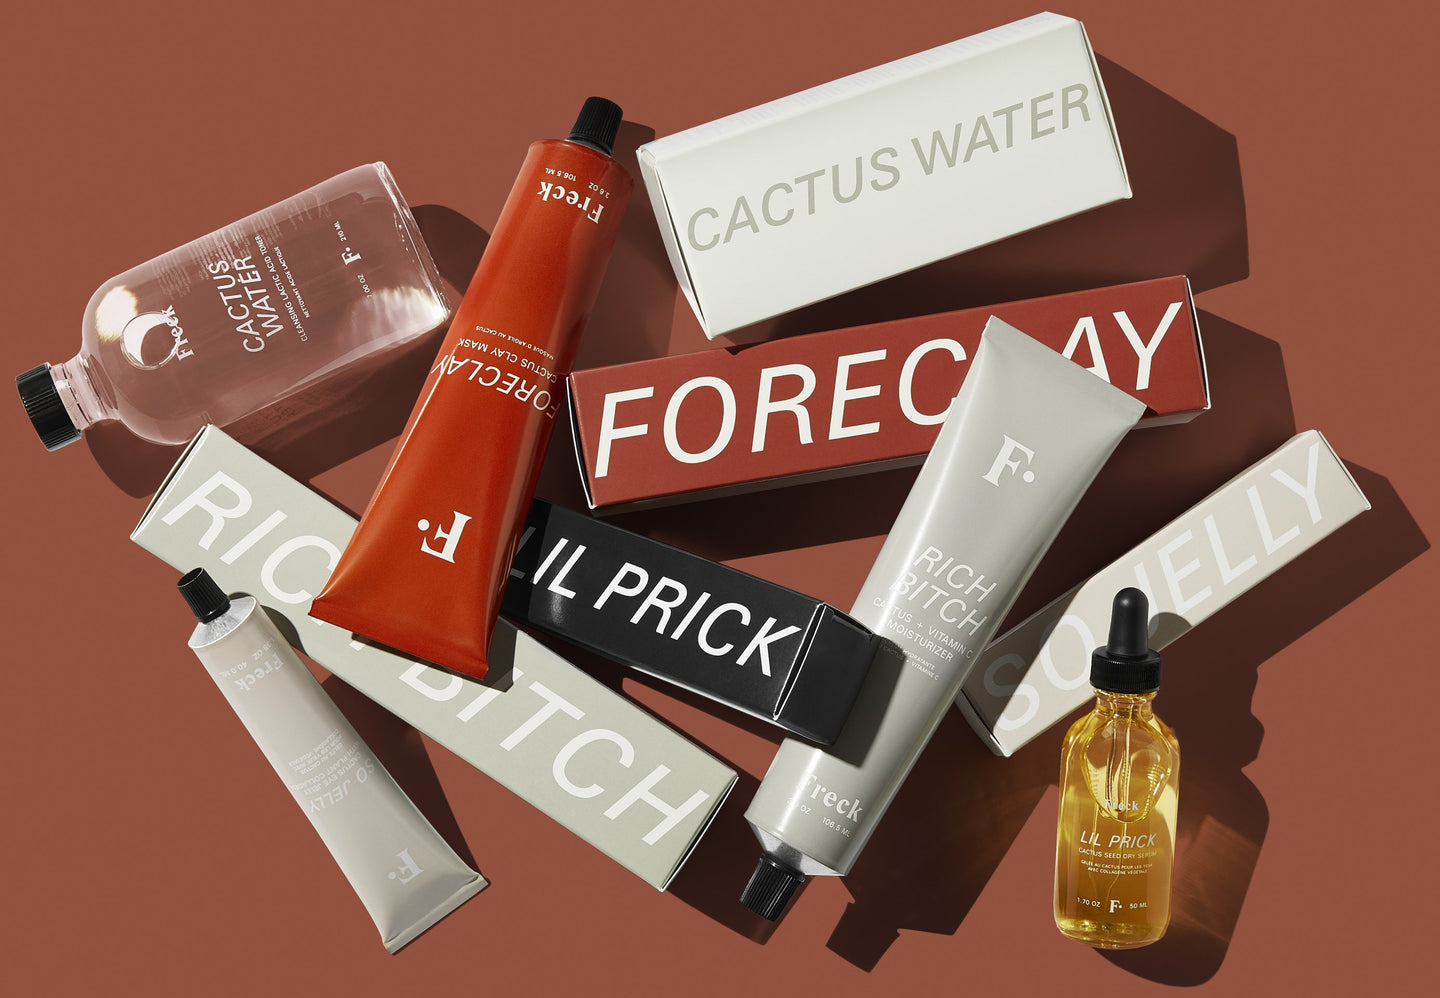 Freck Beauty Products - The Cactus Collection